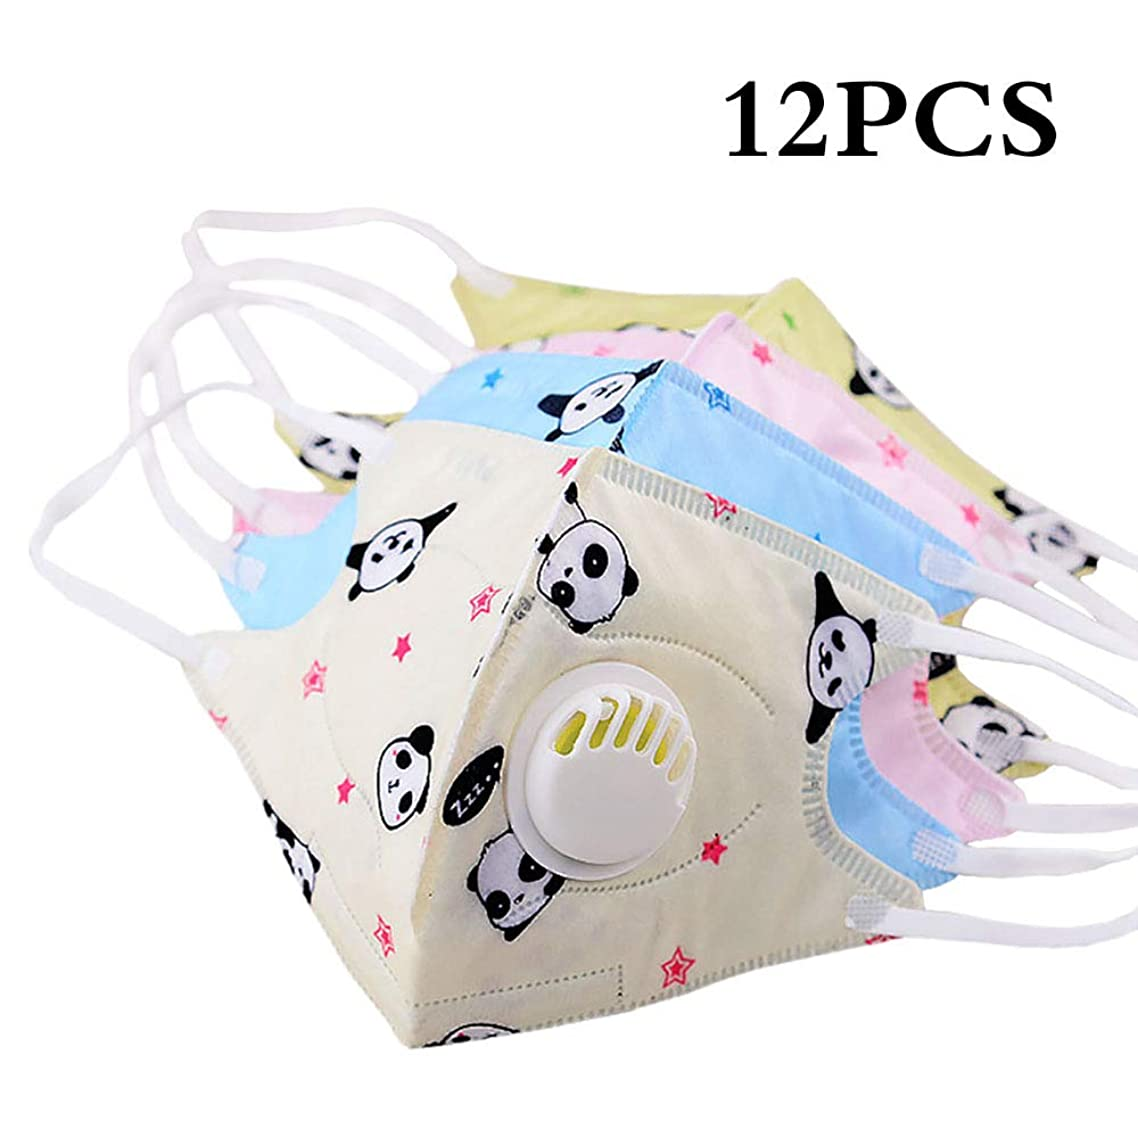 Cartoon Cute PM2.5 Anti-Dust Mouth Face Mask for Kids Disposable Non-Woven Fabric Masks With Respiration Valve (12PC Panda)